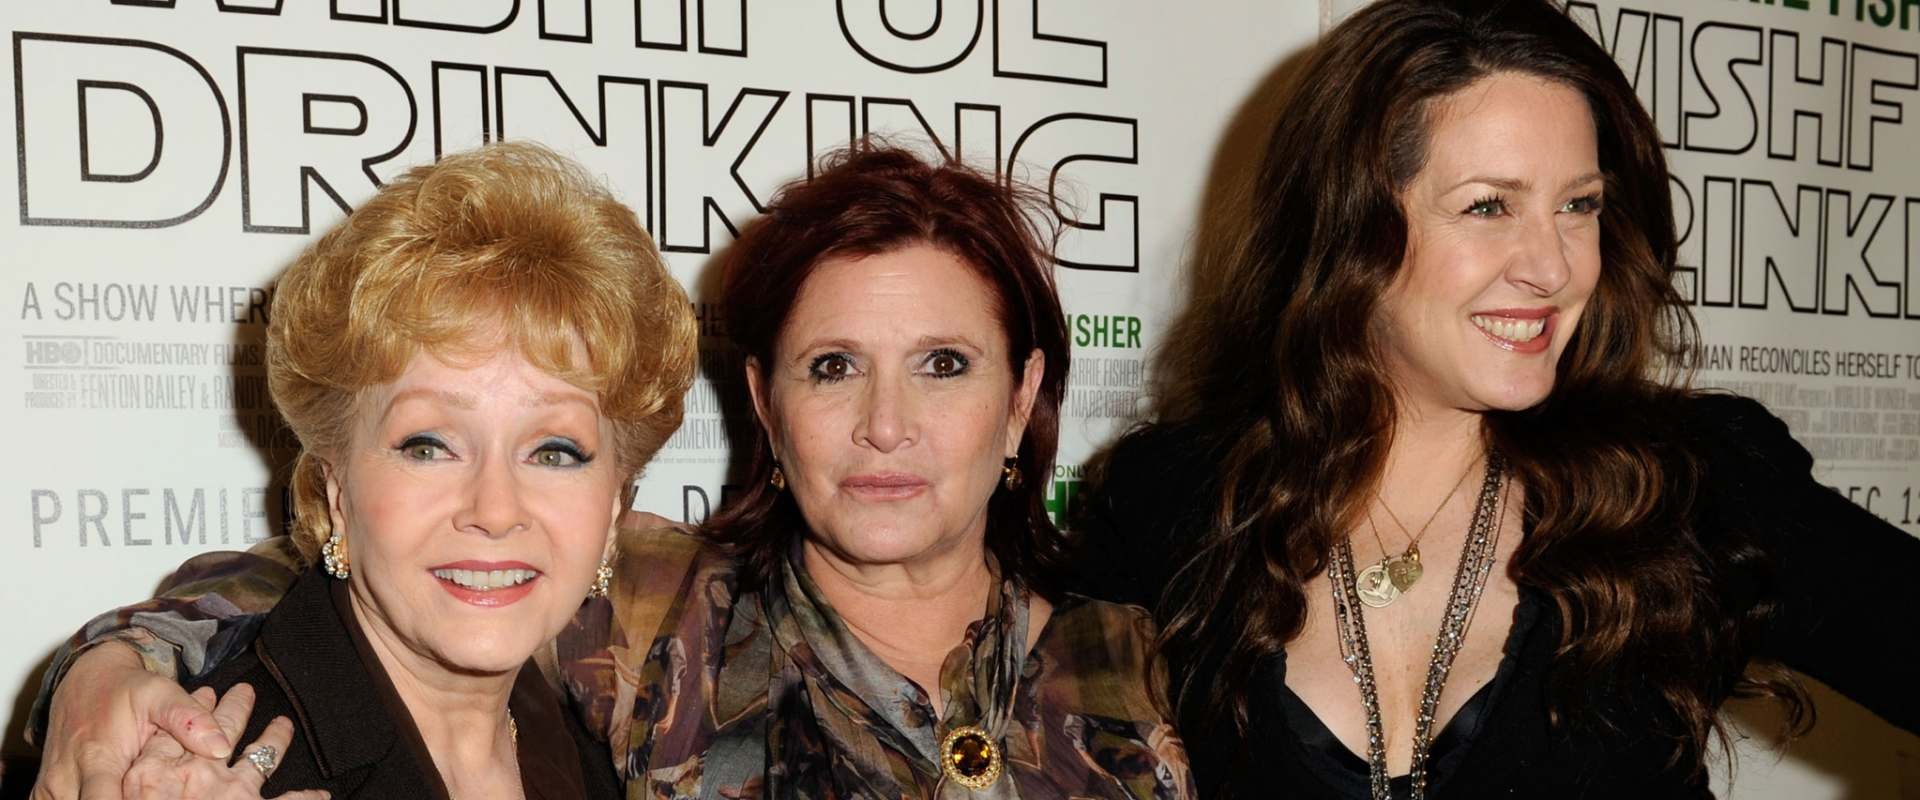 Carrie Fisher: Wishful Drinking background 1